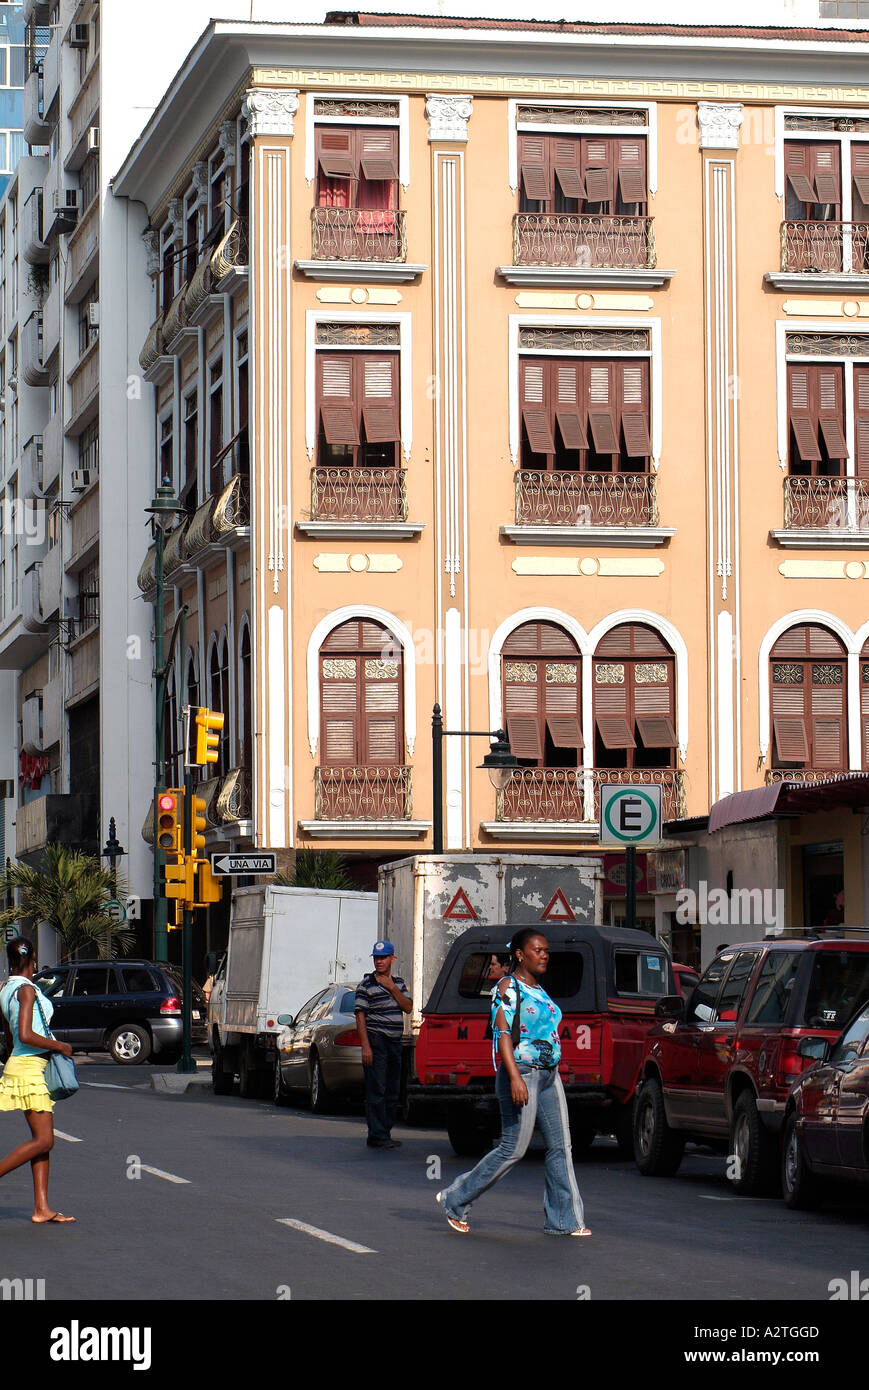 Typical street and hystorical houses in Guayaquil, Ecuador. - Stock Image